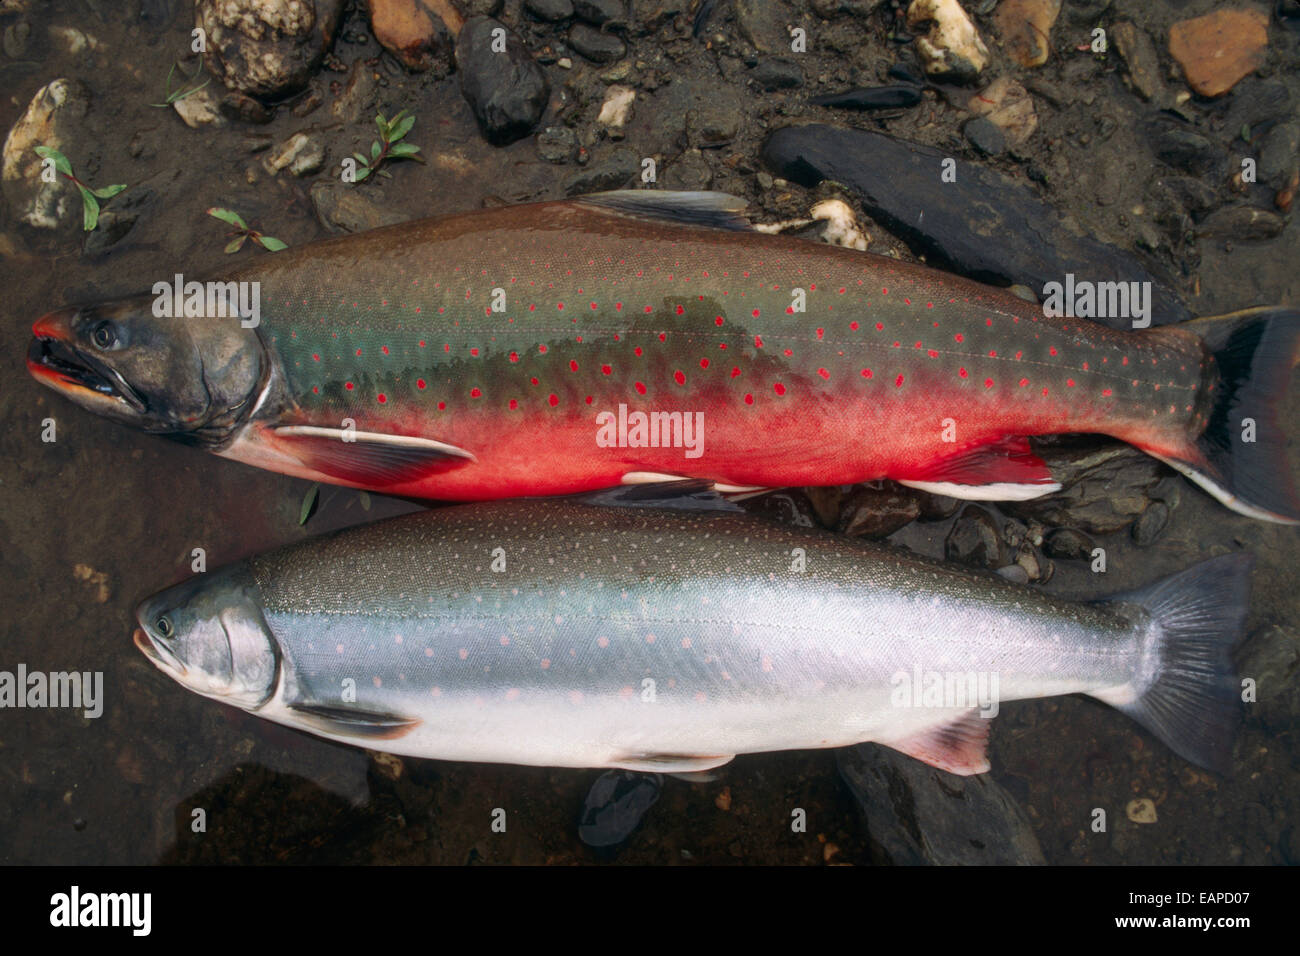 Comparison Shot Of Dolly Varden Both Spawning Colors And Fresh From ...